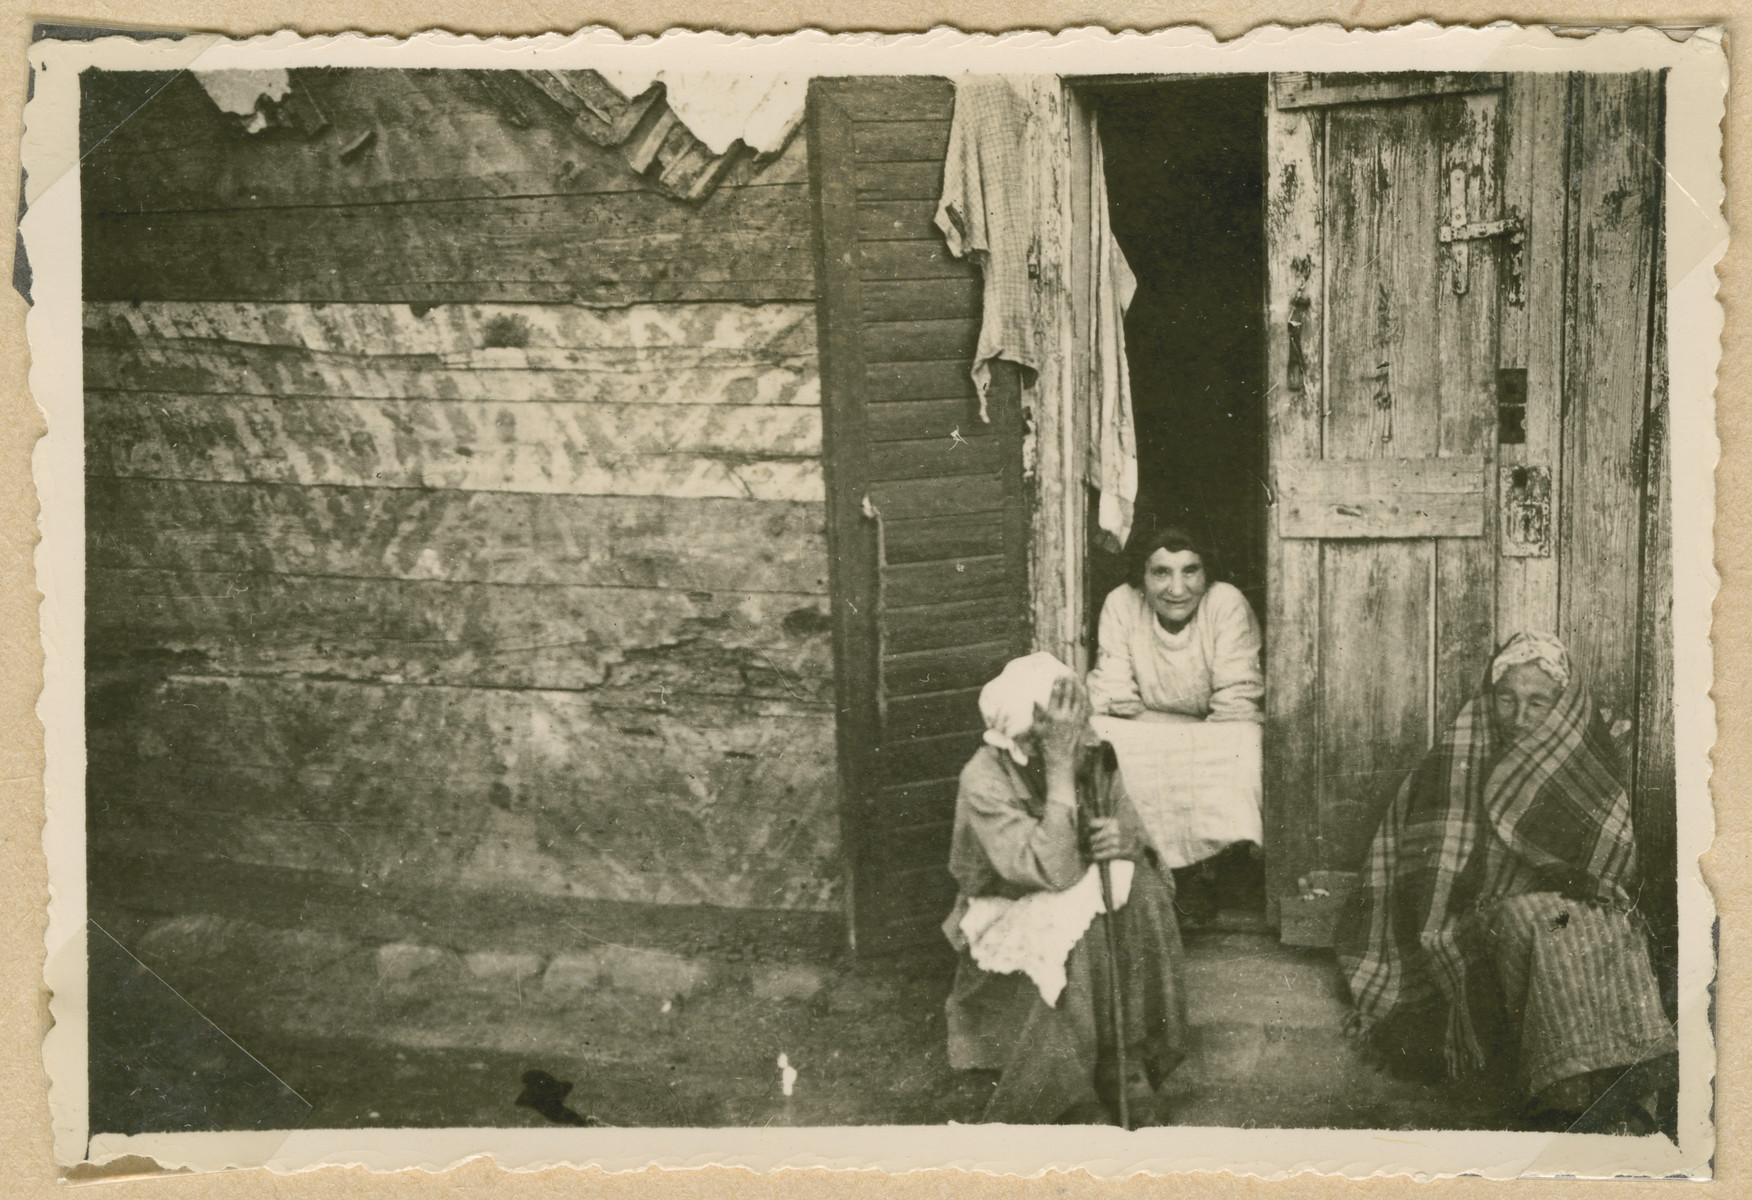 Three women gather on a stoop outside a dilapidated home in Deblin-Irena.